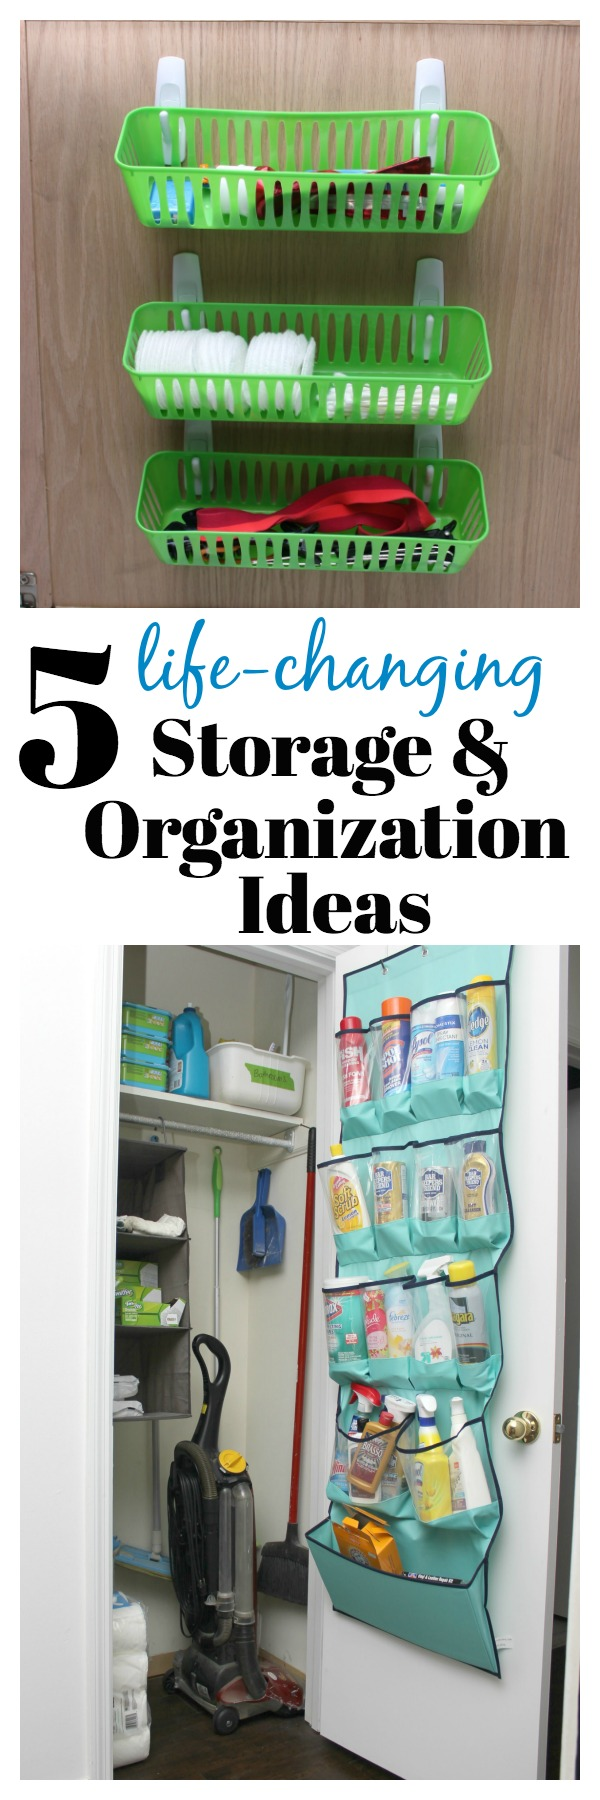 These budget friendly simple storage and organization ideas will have you wishing you had known about them sooner! They will simplify your home and life!